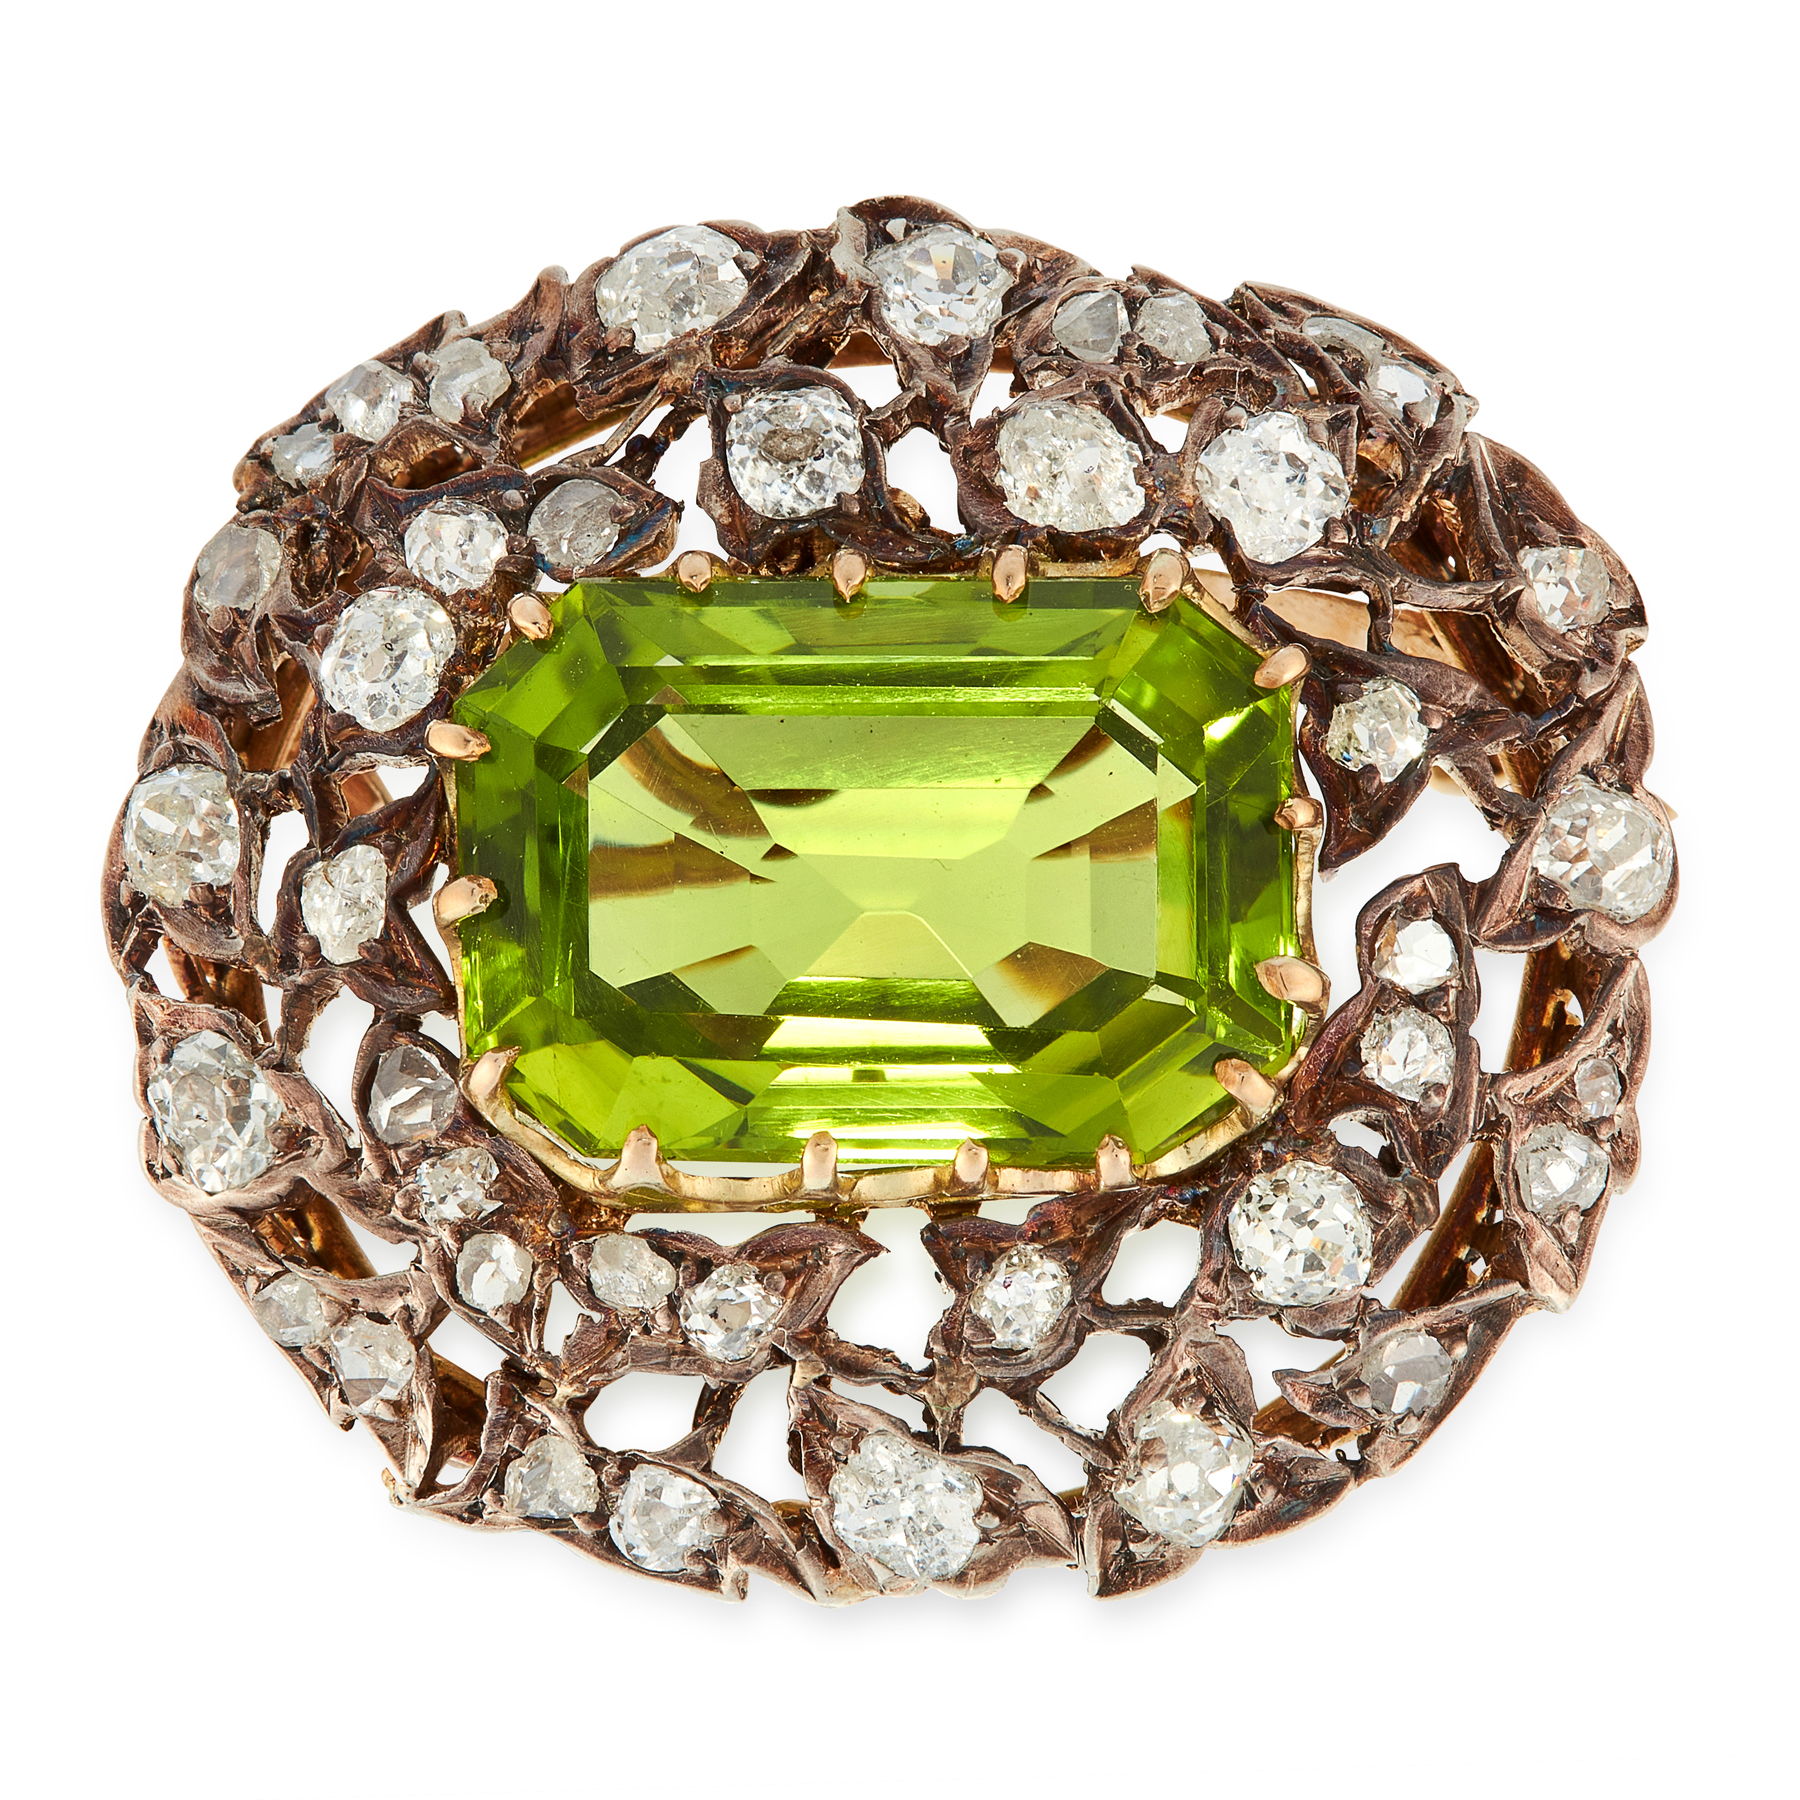 AN ANTIQUE PERIDOT AND DIAMOND BROOCH, 19TH CENTURY in yellow gold and silver, set with an emerald